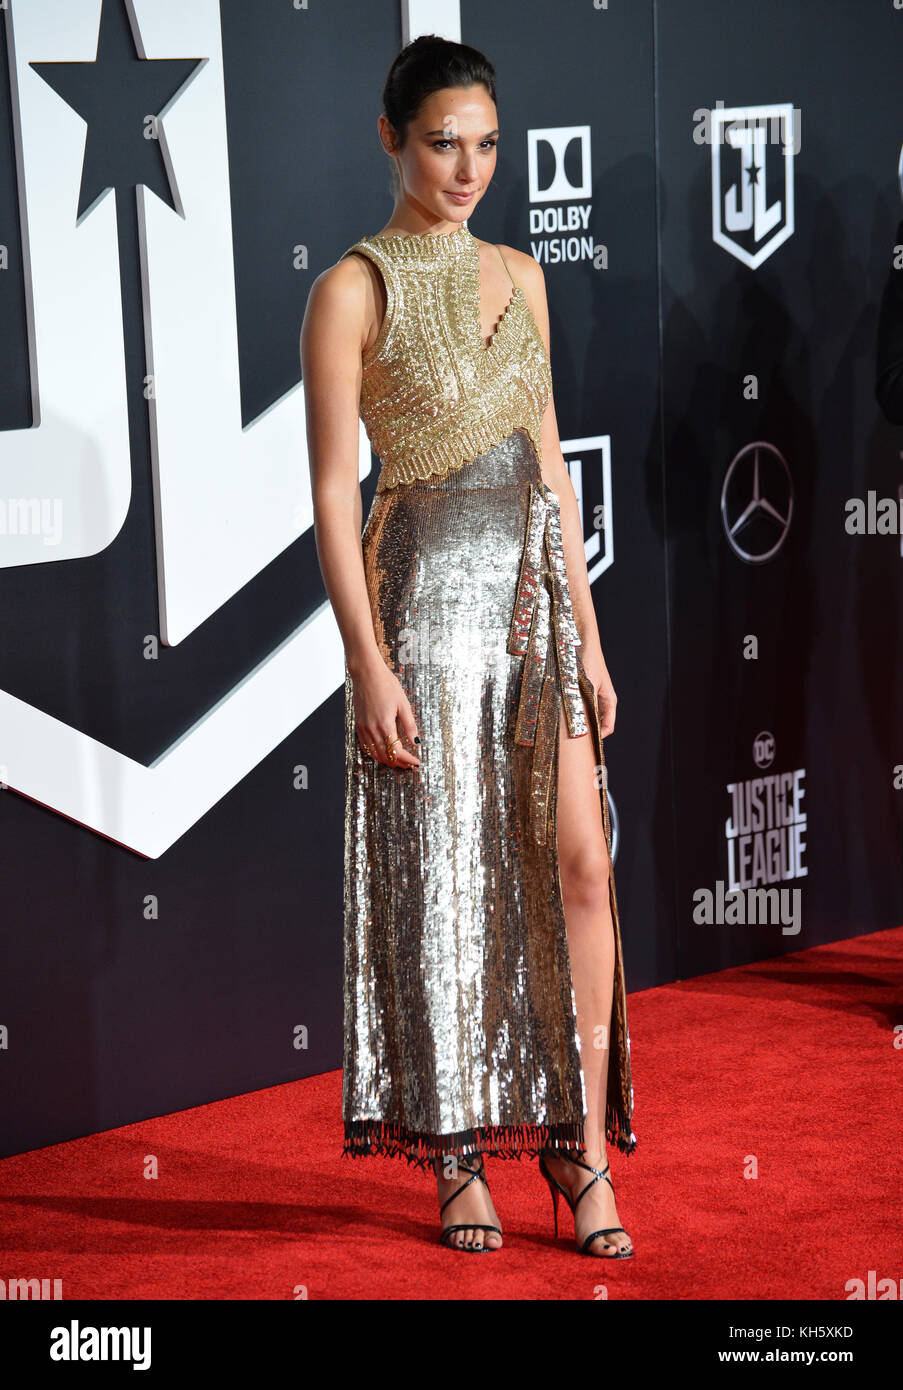 Los Angeles, USA. 13th Nov, 2017. Gal Gadot at the world premiere for 'Justice League' at The Dolby Theatre, - Stock Image